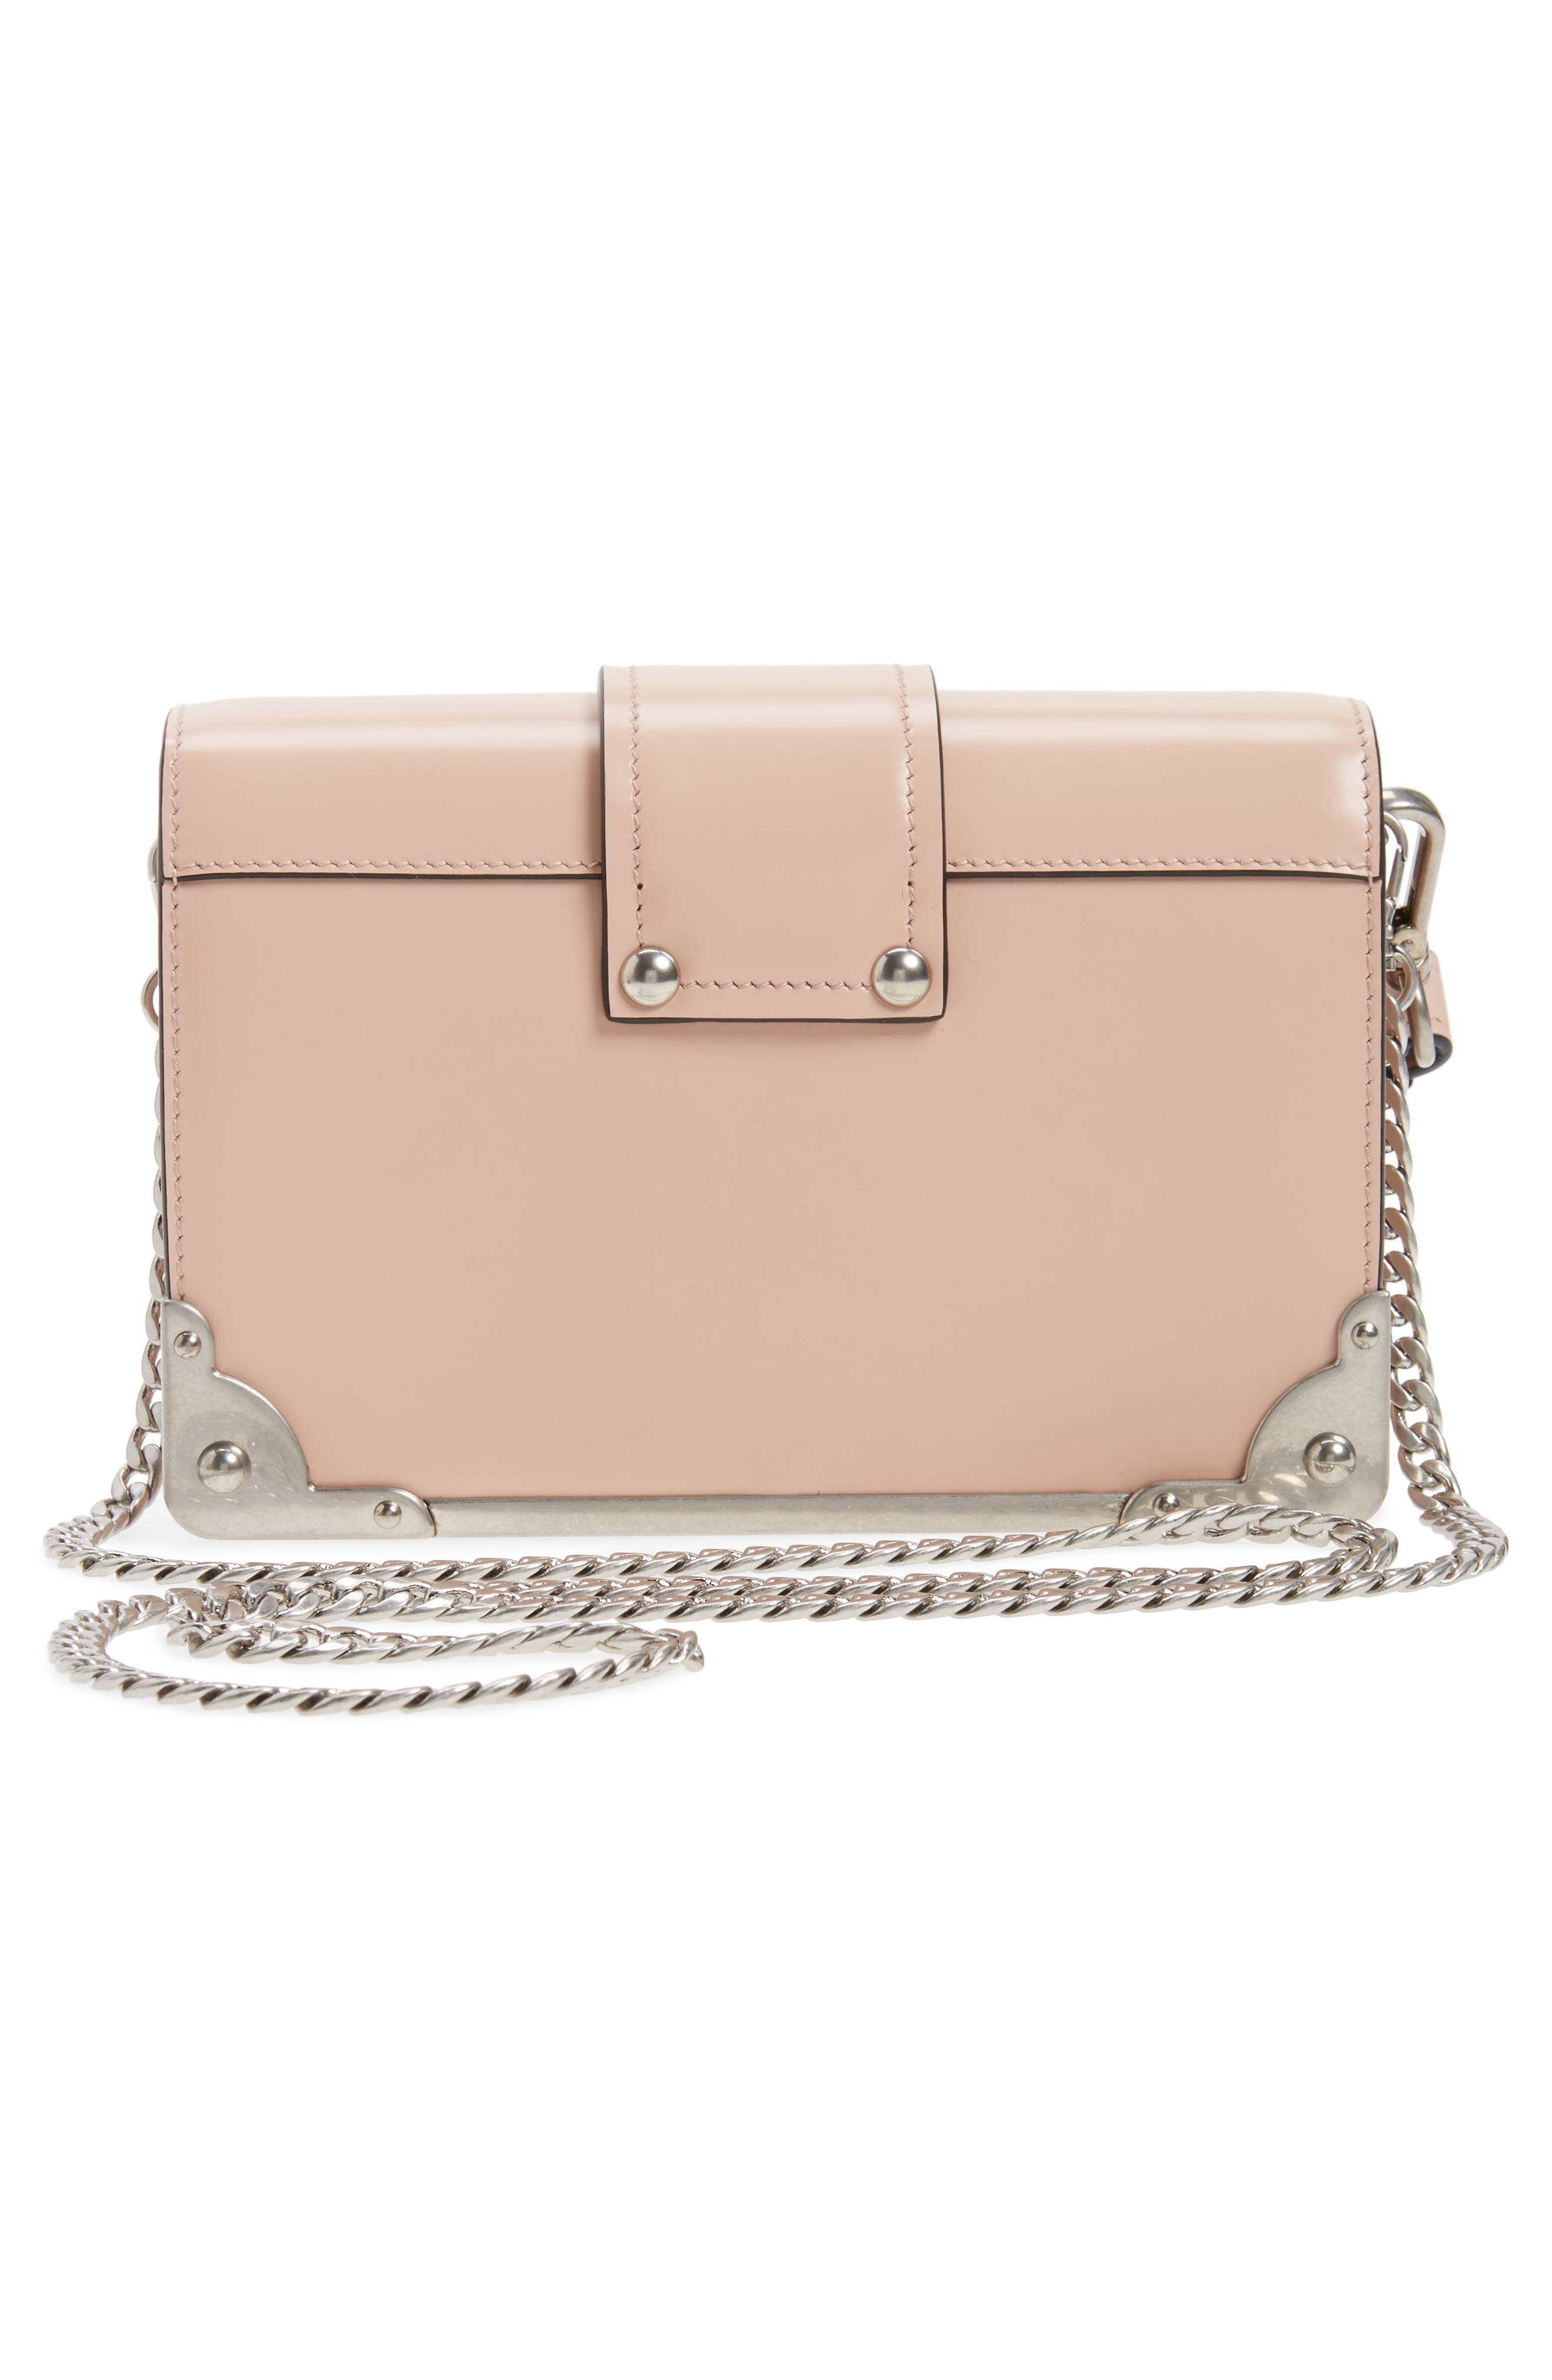 Small Cahier Leather Shoulder Bag,                             Alternate thumbnail 3, color,                             Pesca